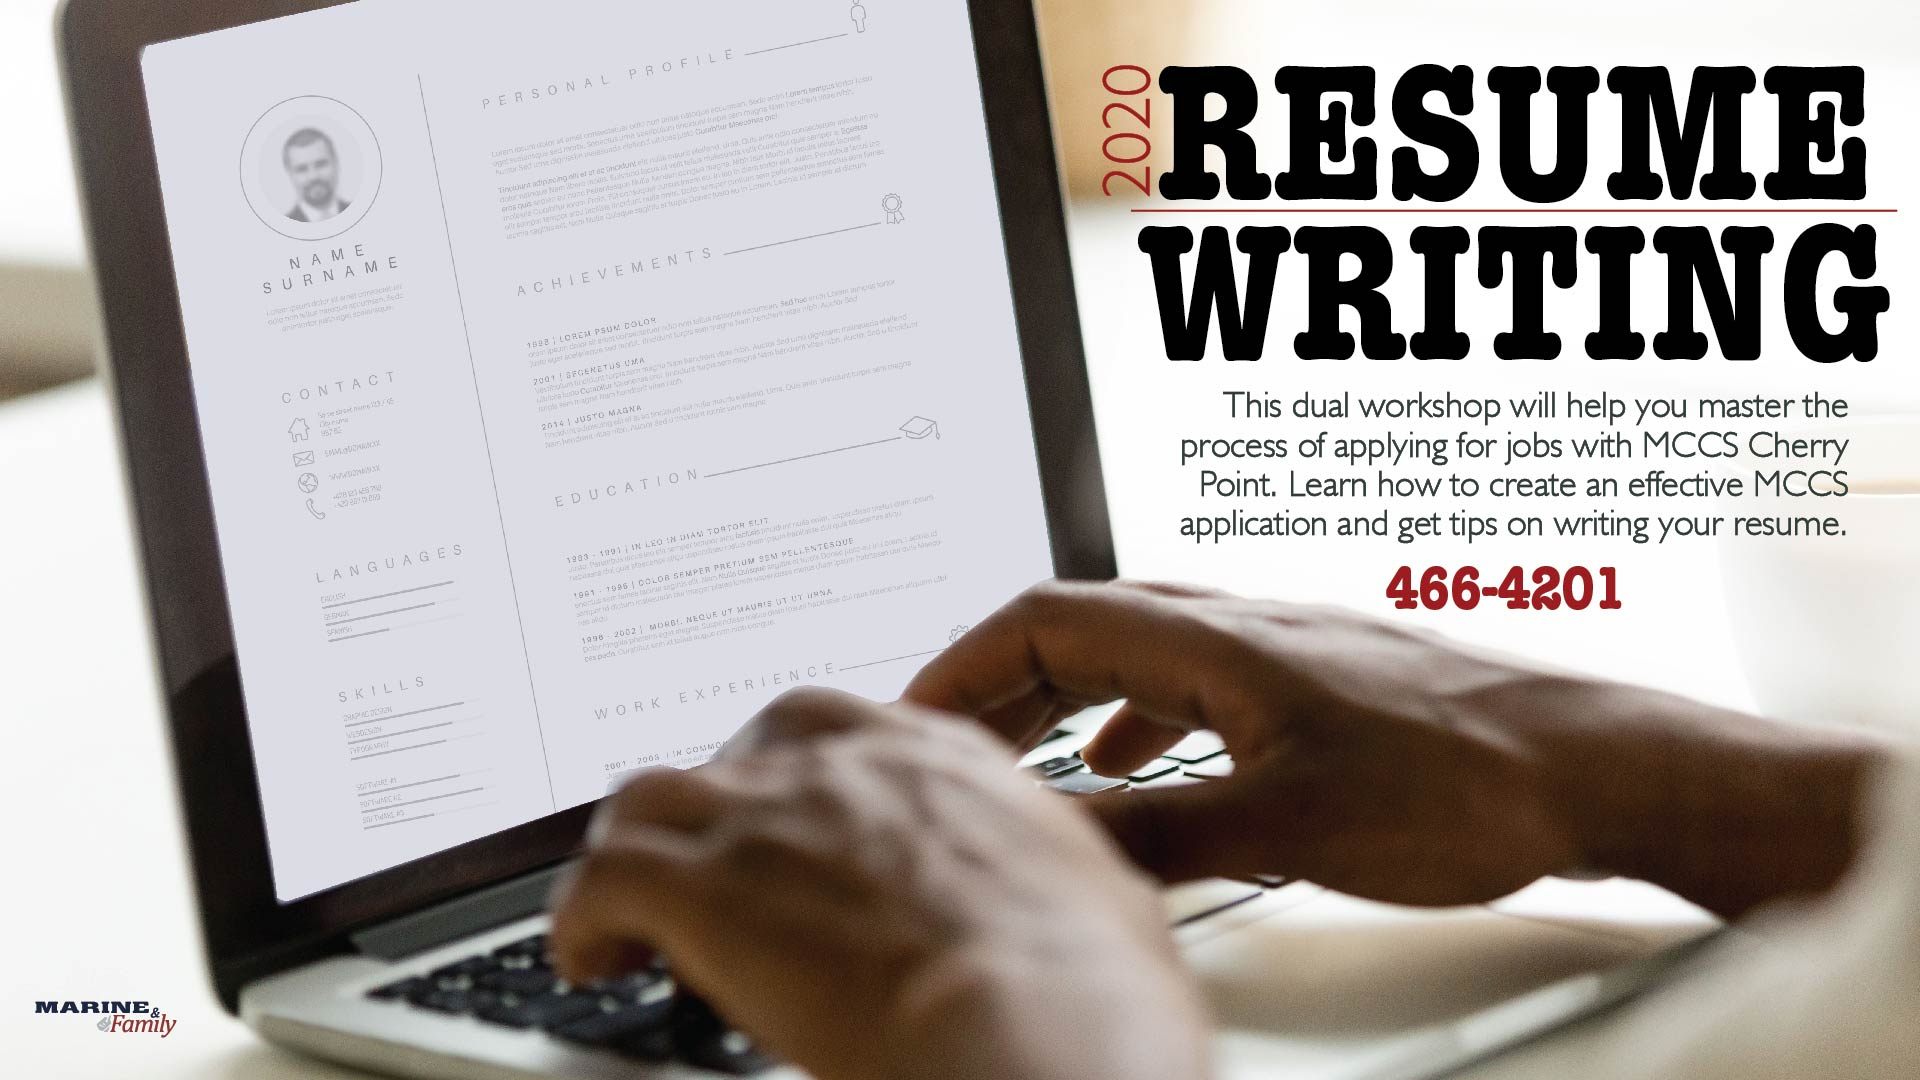 resume writing mccs point different styles of resumewriting web rezoom canva maker free Resume Different Styles Of Resume Writing